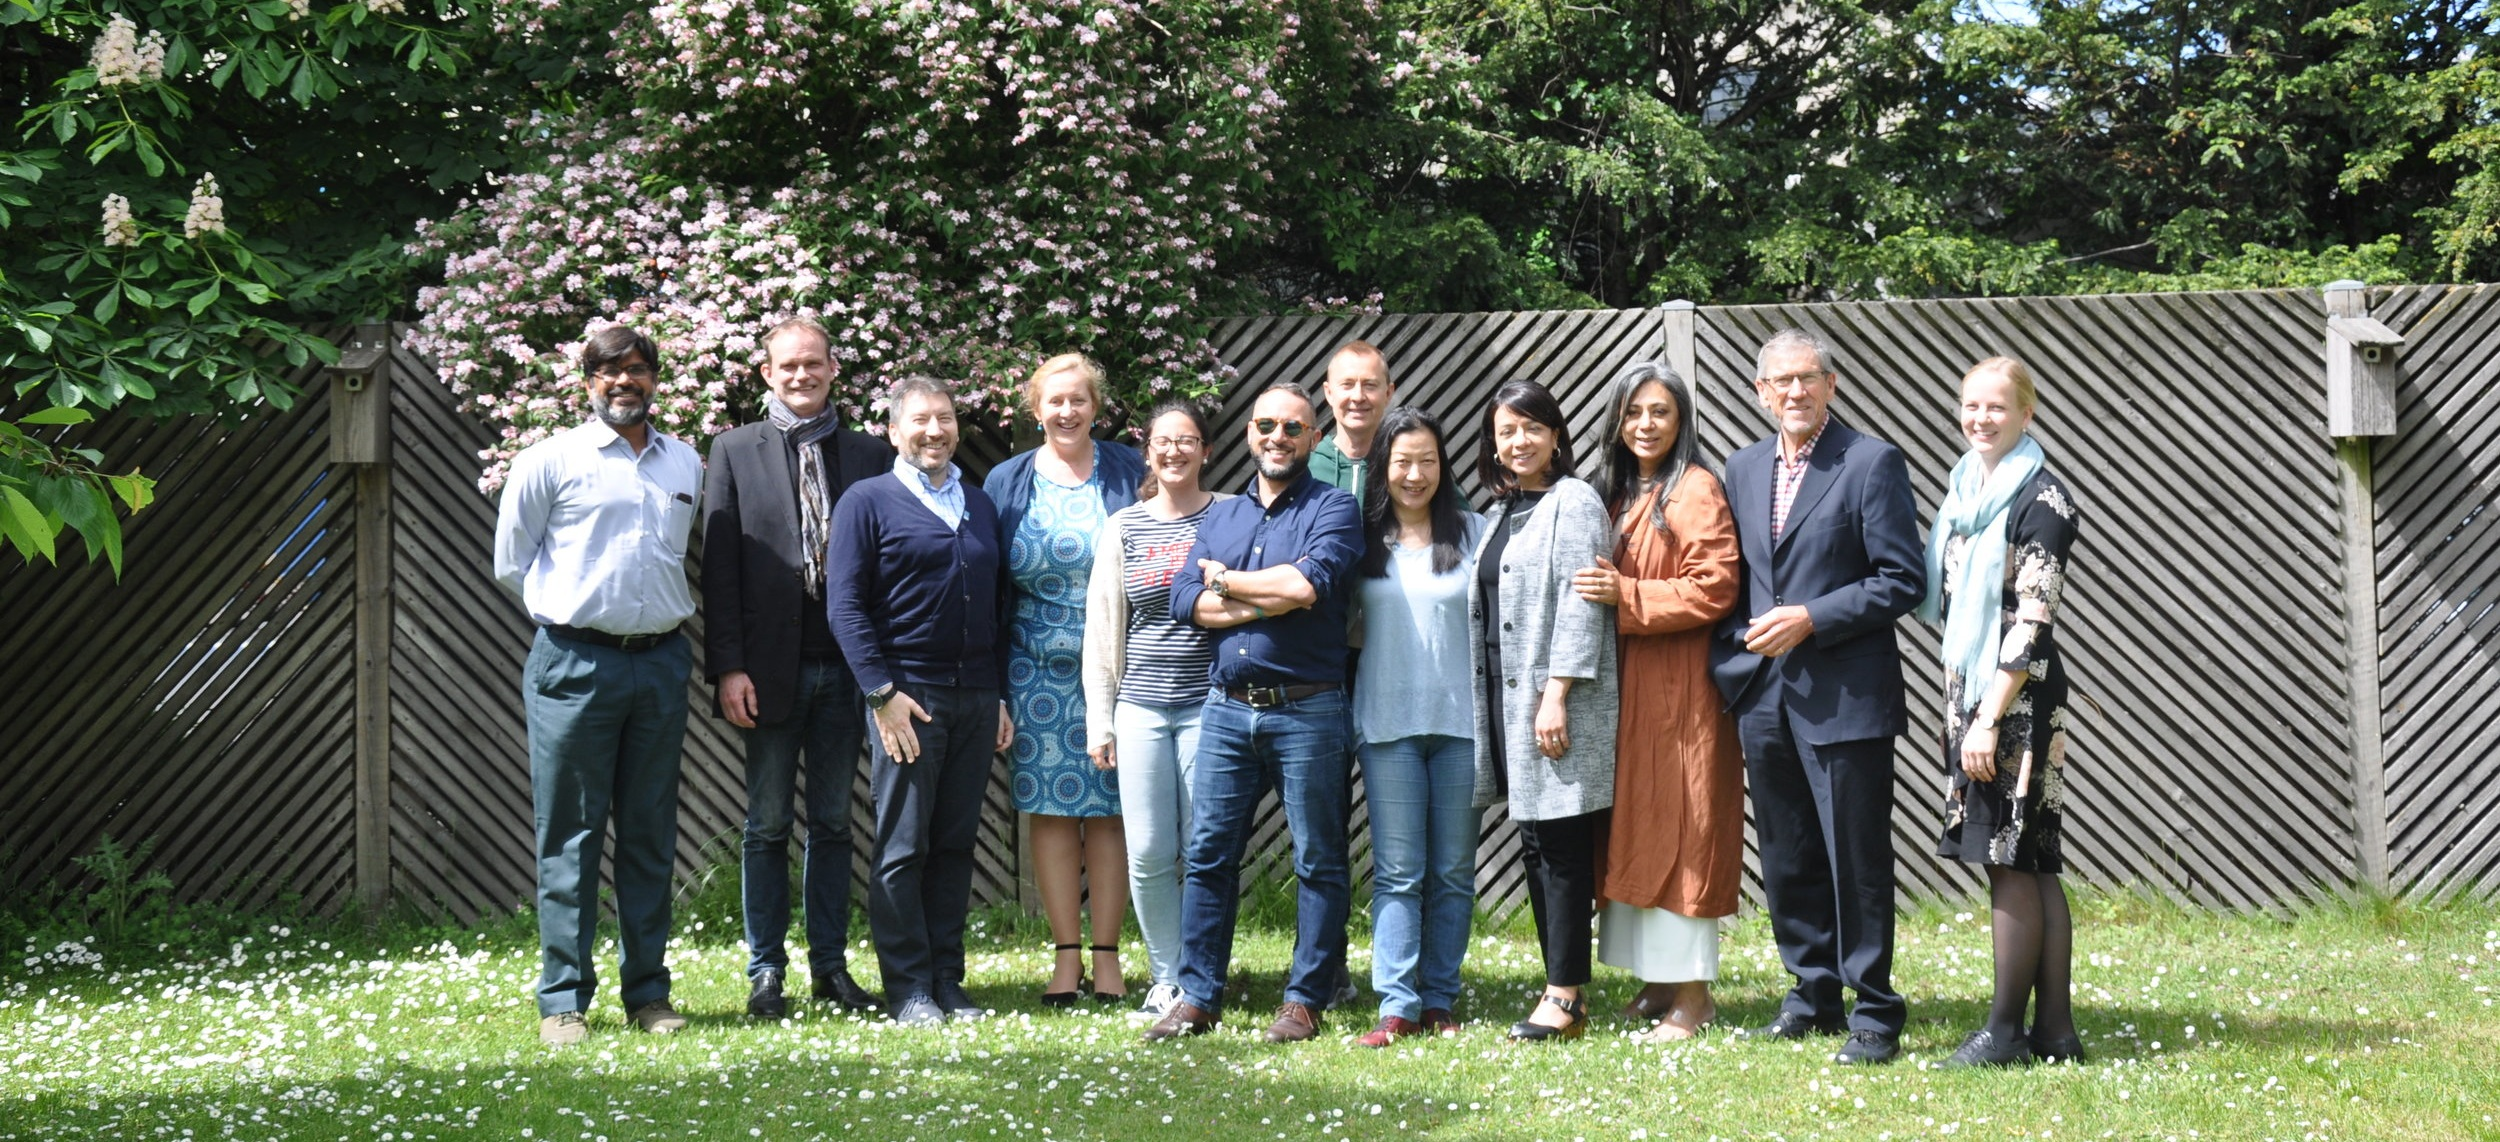 From left to right: Pramod Sharma, Torvald Jacobsson, Sasha Karajovic, Gosia Luszczek, Filipa Murta, Pedro Marcelino. Richard Steed, Julie Saito, Anne Vela-Wagner, Mayra Navarrete, Christopher Slaney and Kristina Madsen